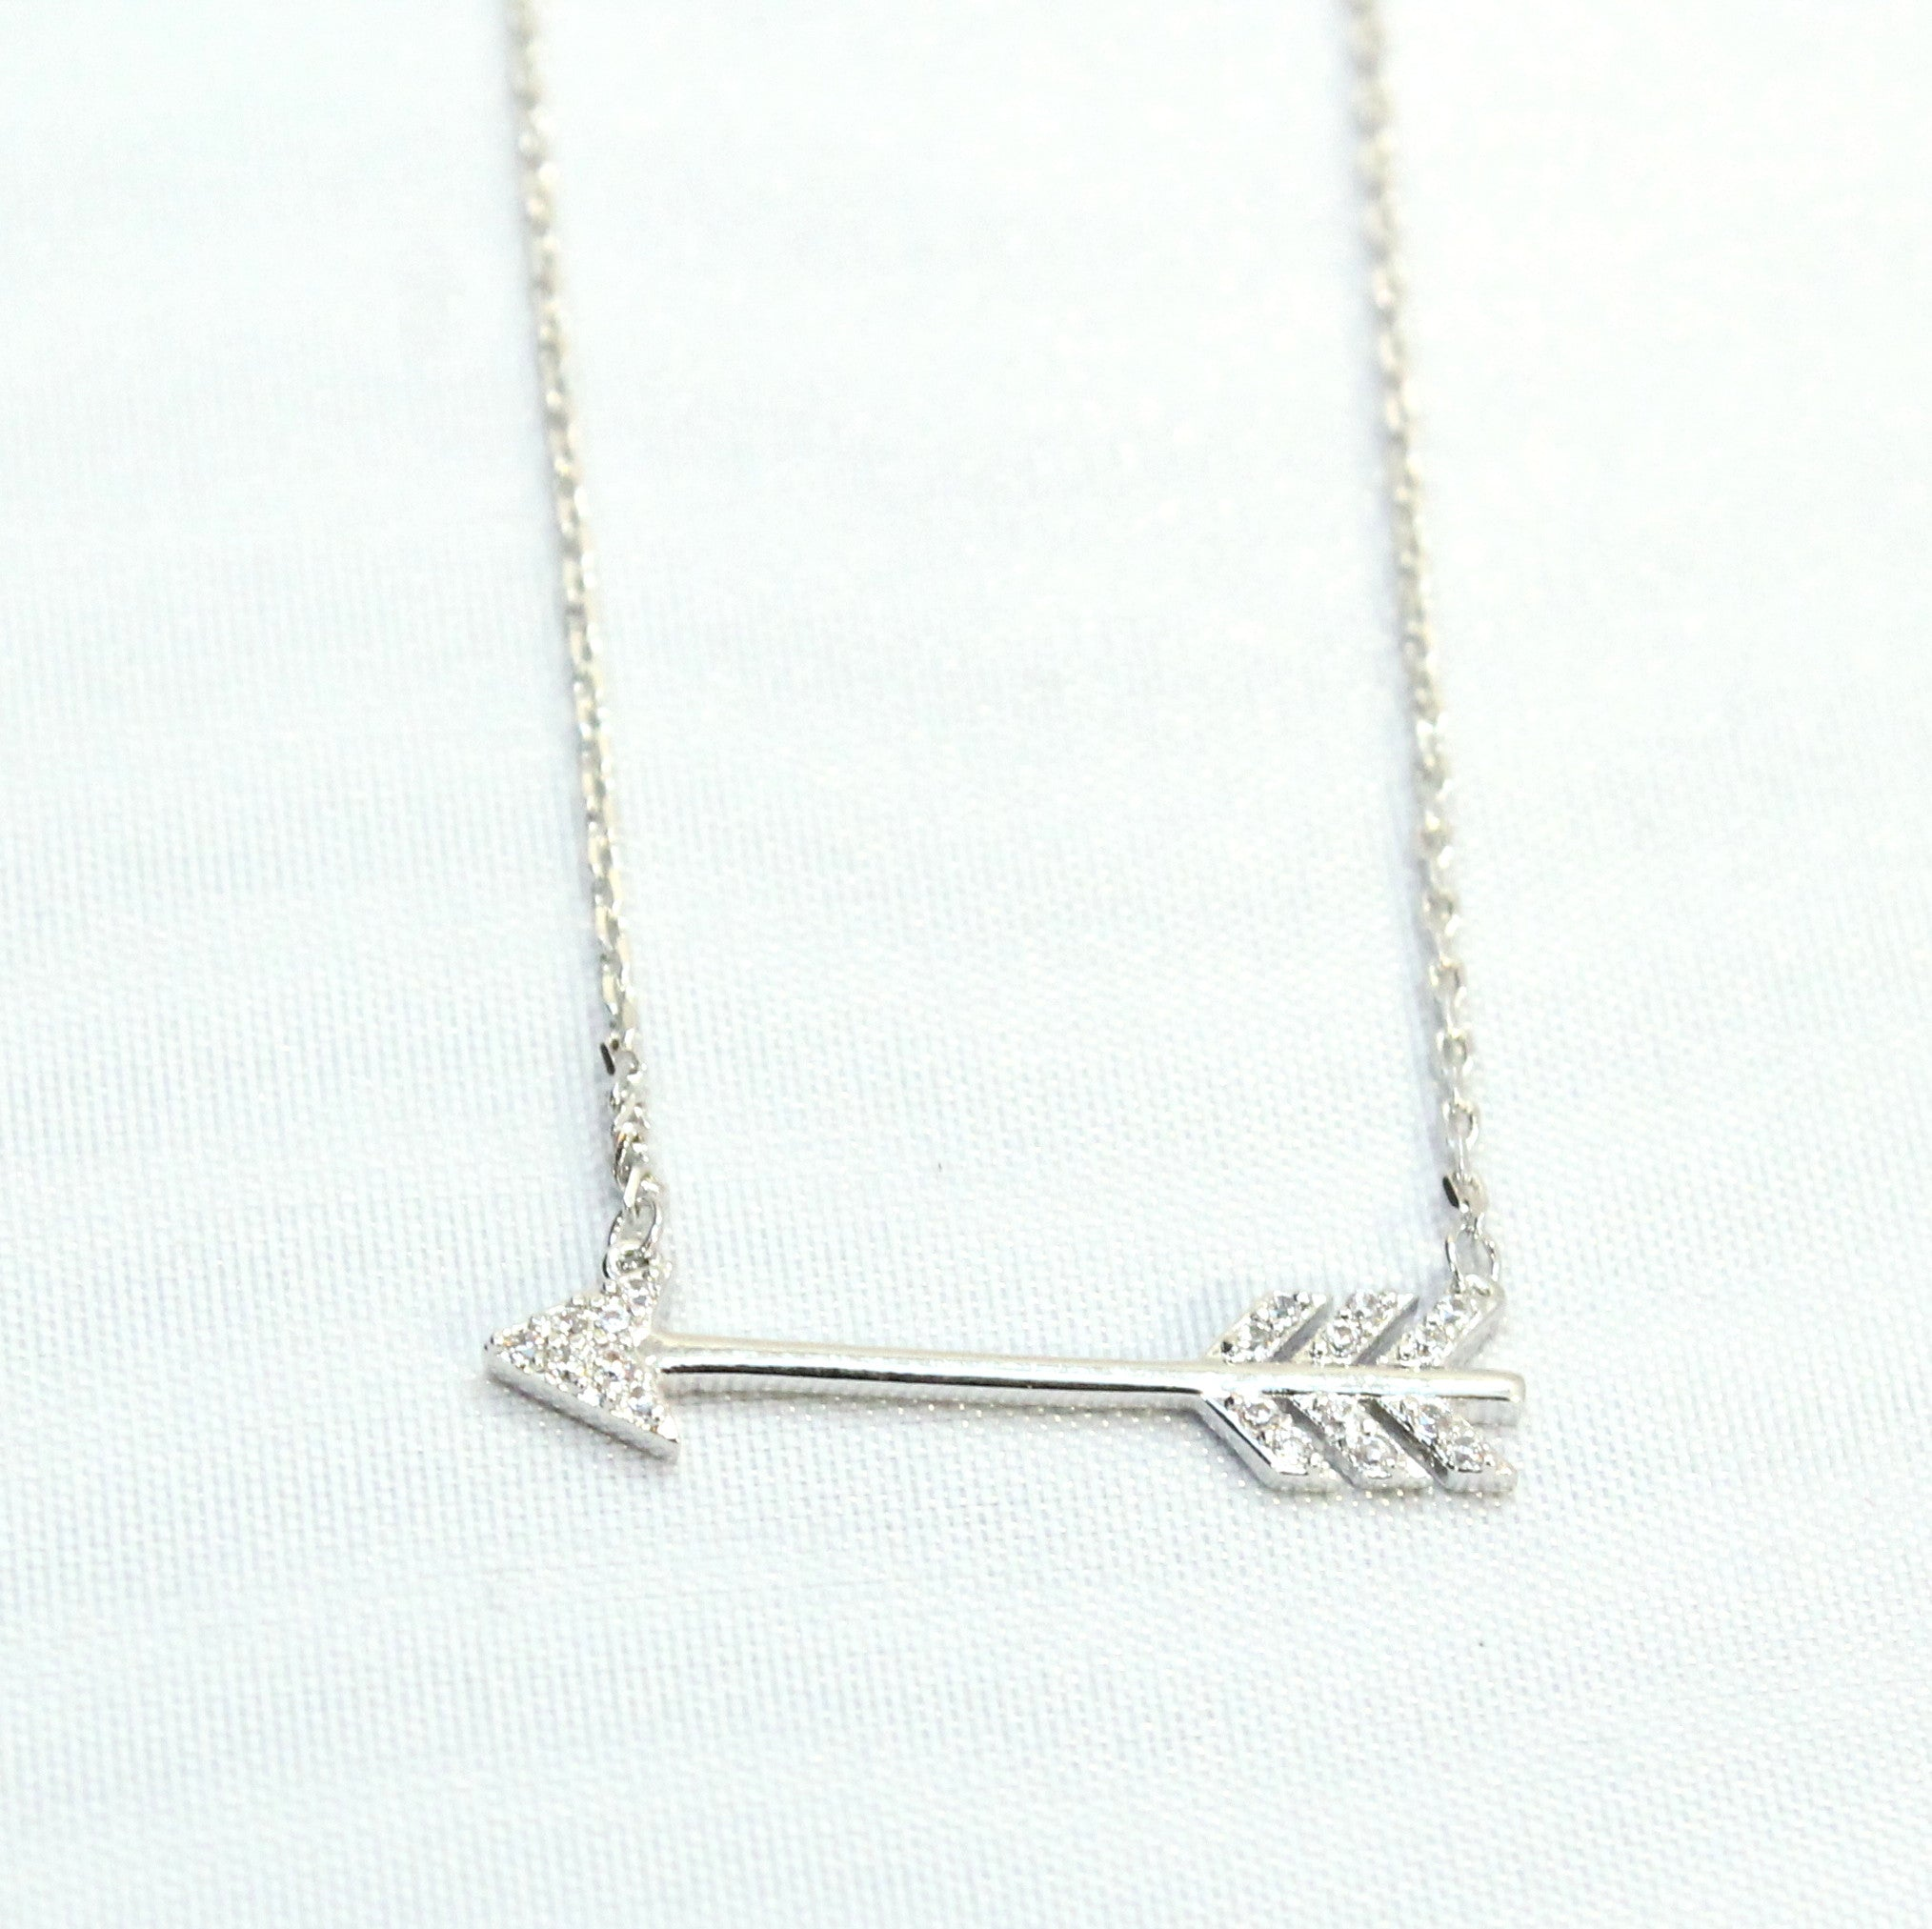 Pyle - Arrow thin necklace